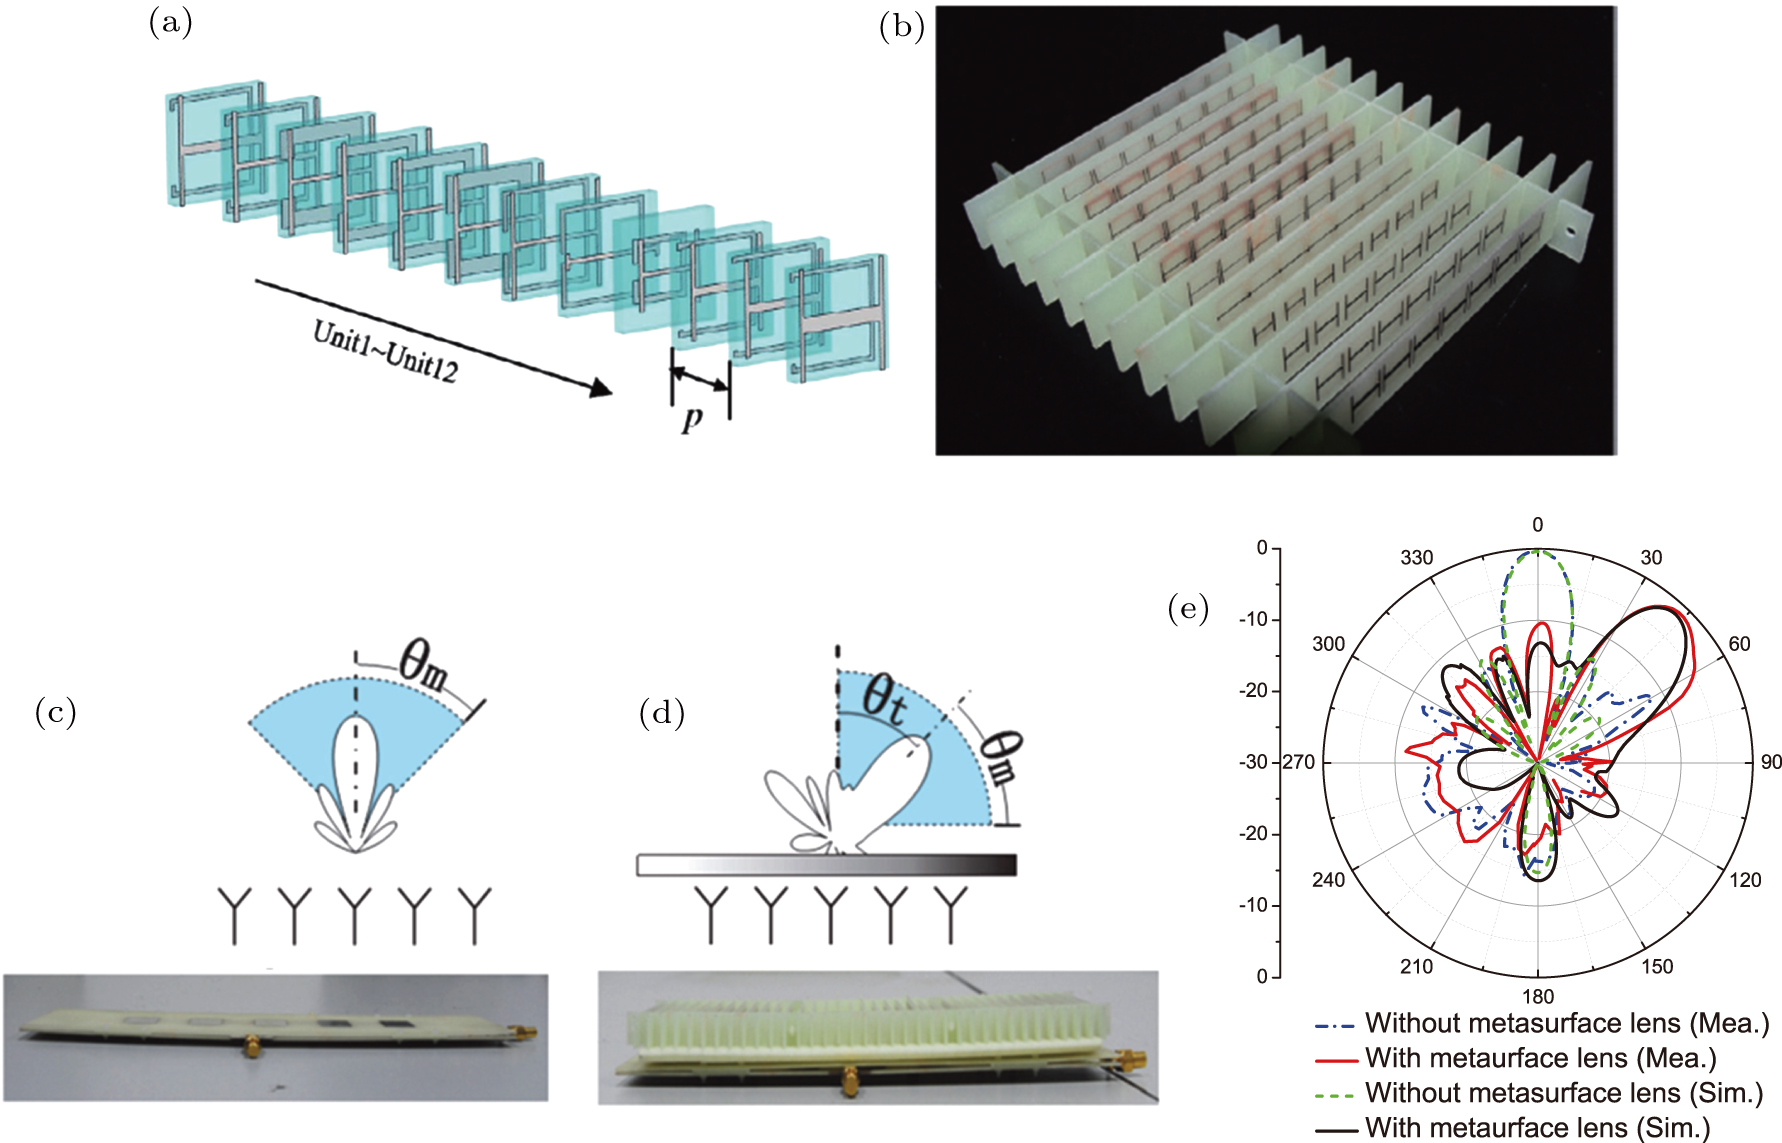 Metamaterials and metasurfaces for designing metadevices